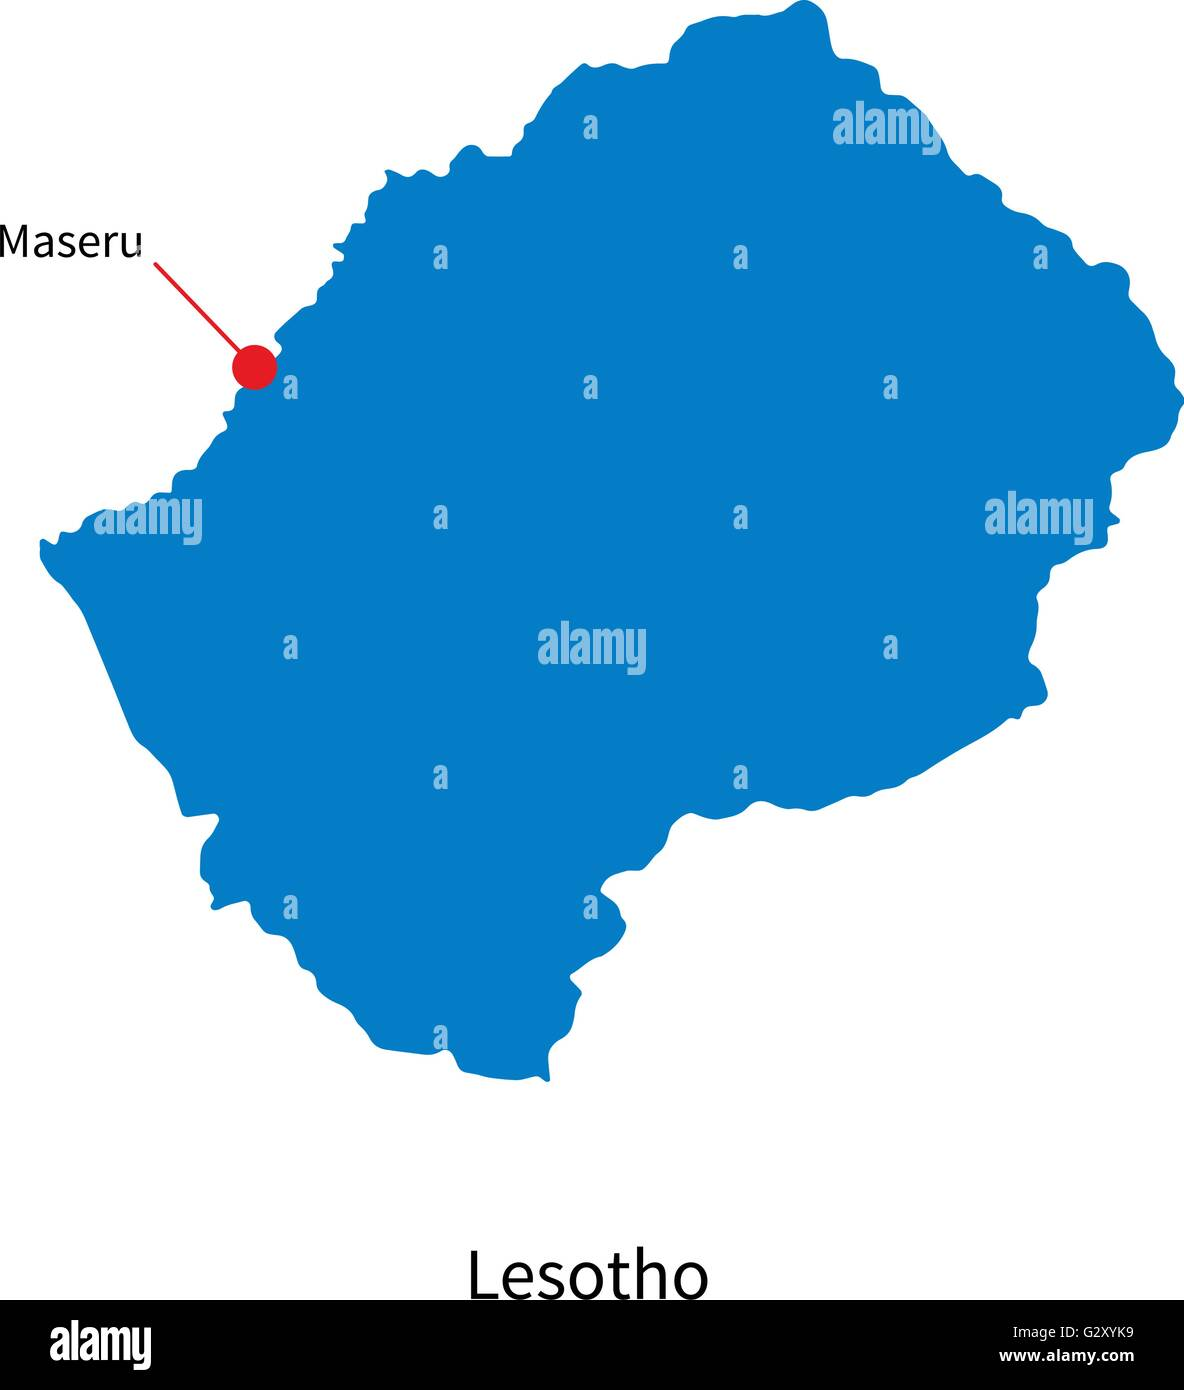 Detailed Vector Map Of Lesotho And Capital City Maseru Stock - Maseru map